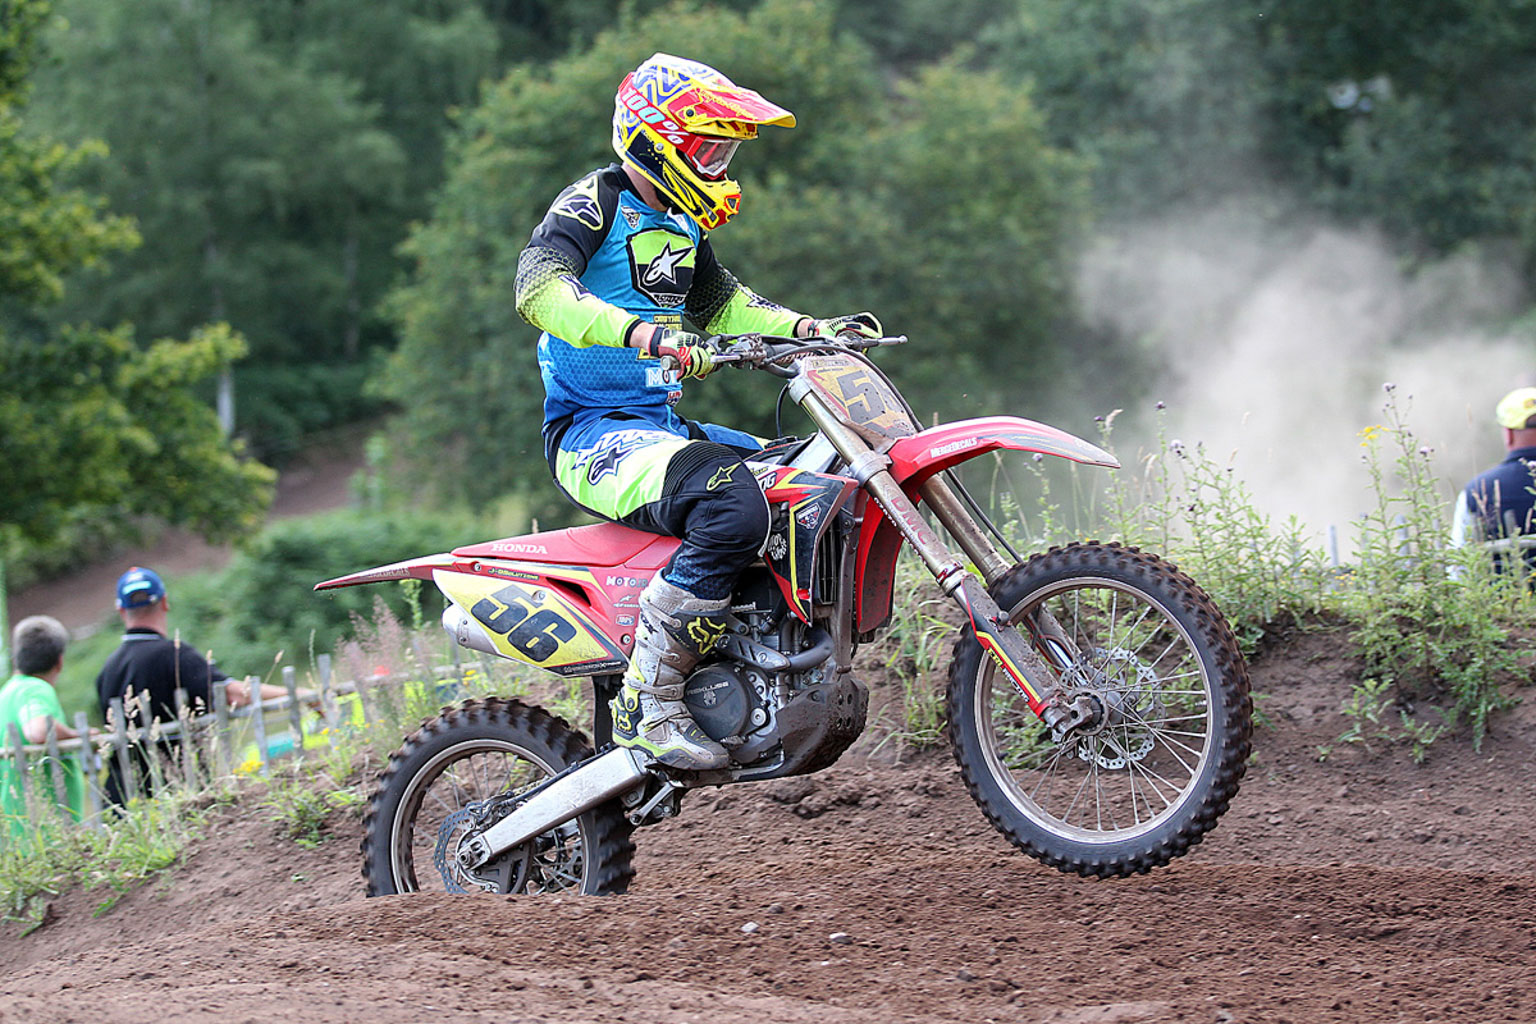 Ed Briscoe, 3rd in MX1